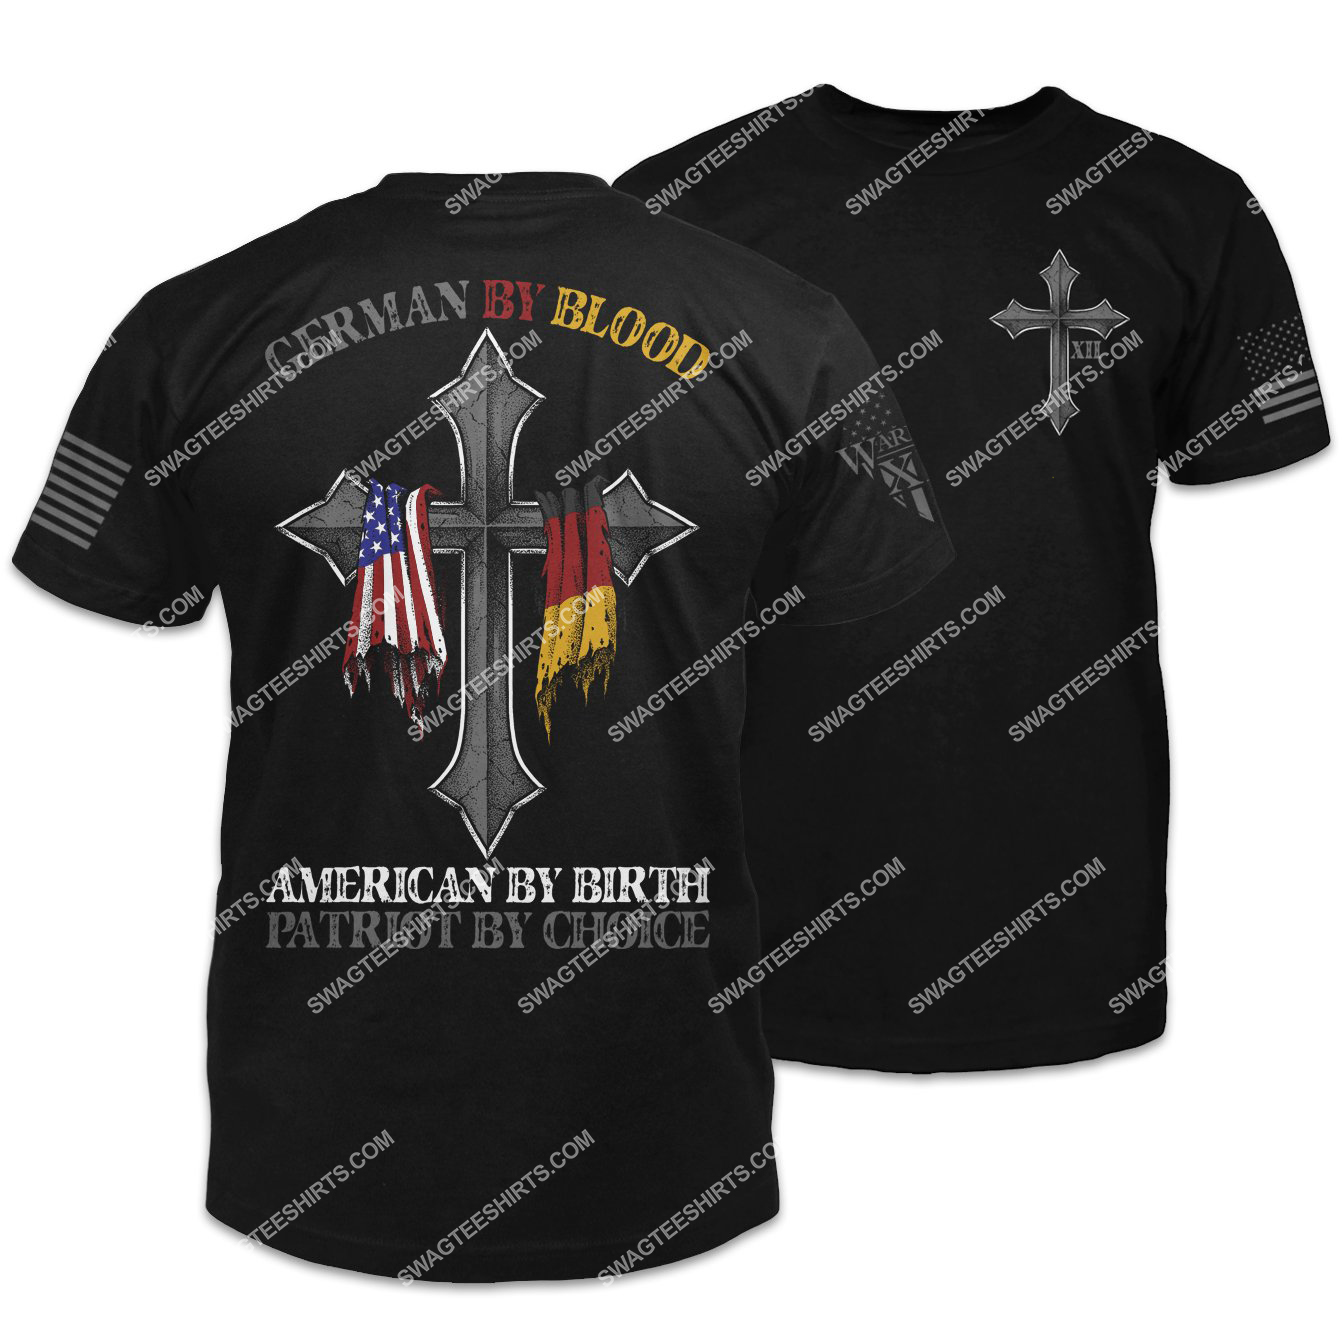 german by blood american by birth patriot by choice shirt 1 - Copy